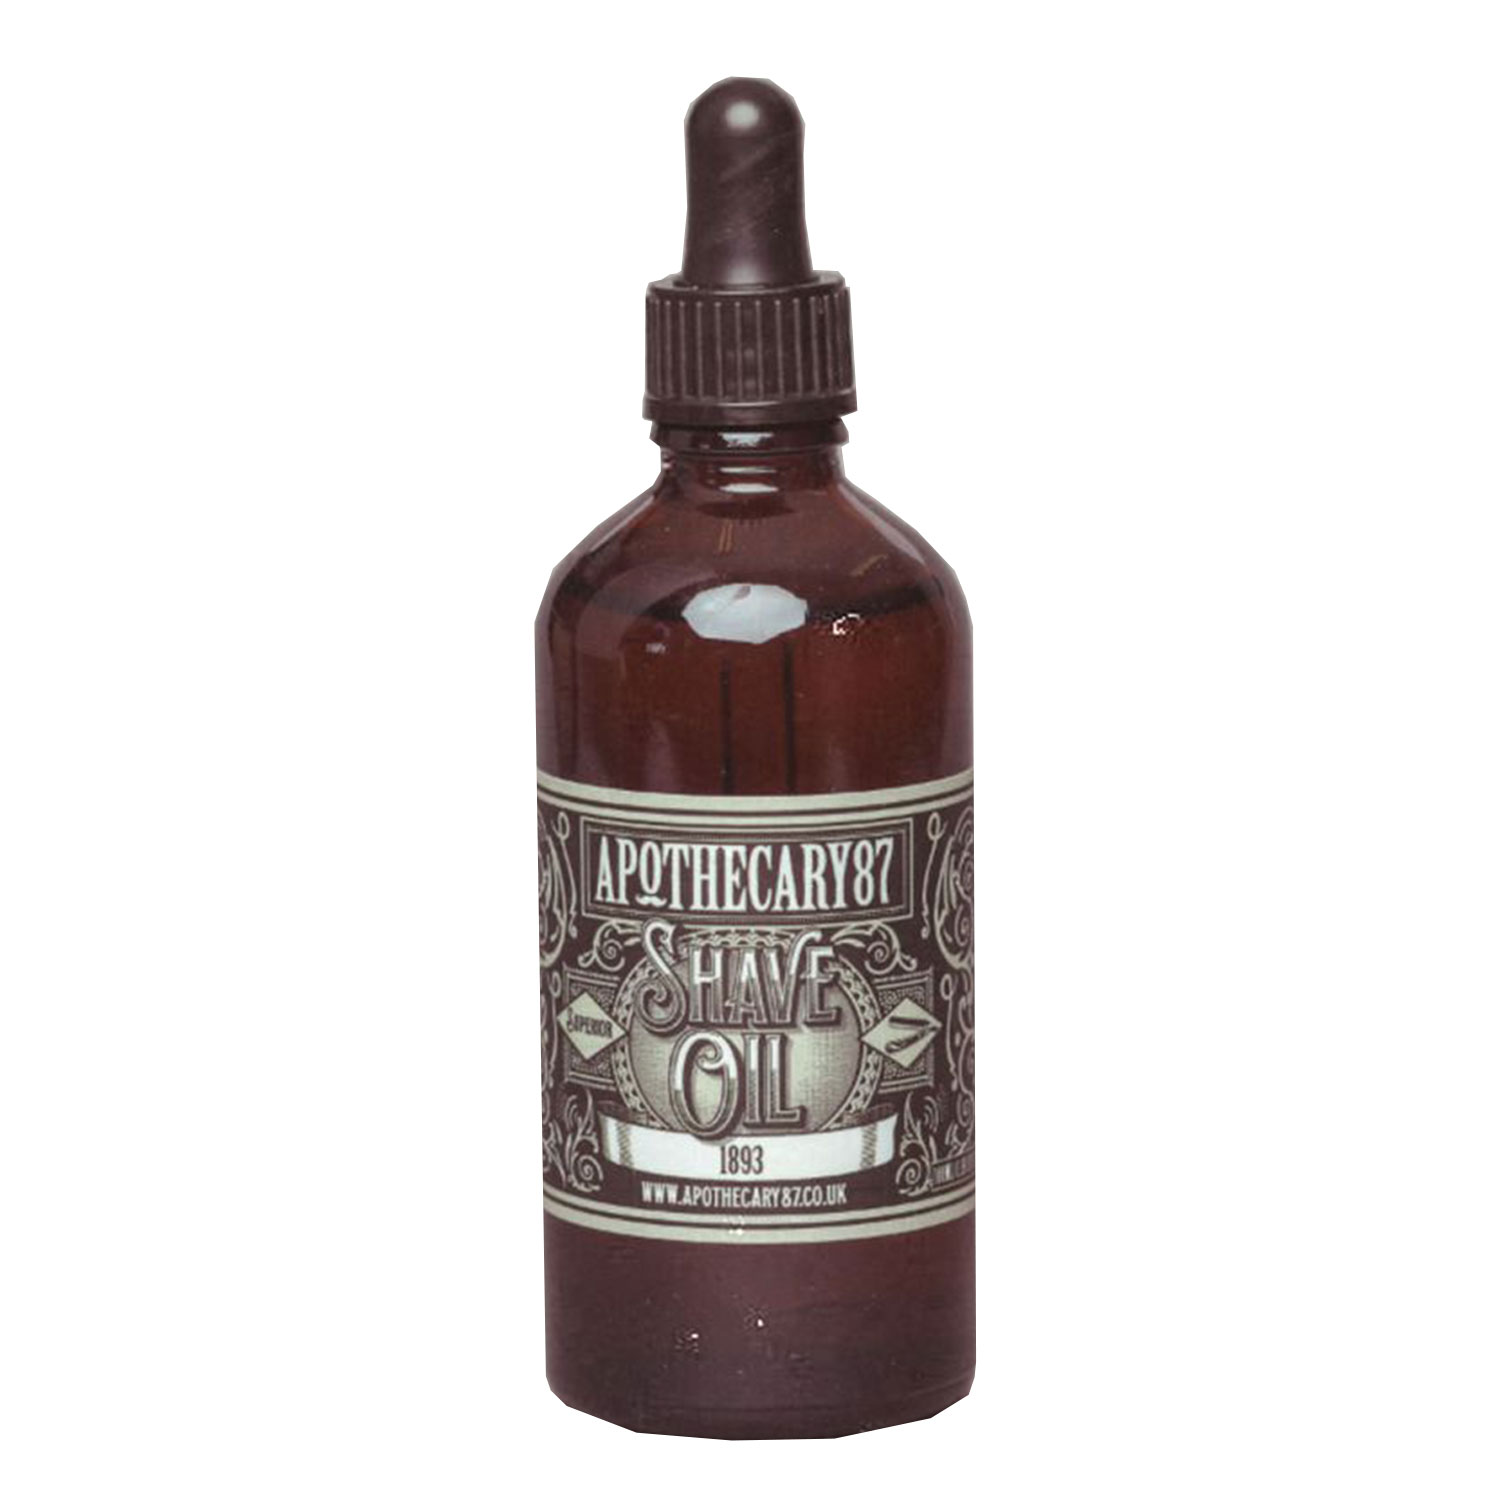 Apothecary87 Grooming - Shave Oil 1893 Fragrance - 100ml